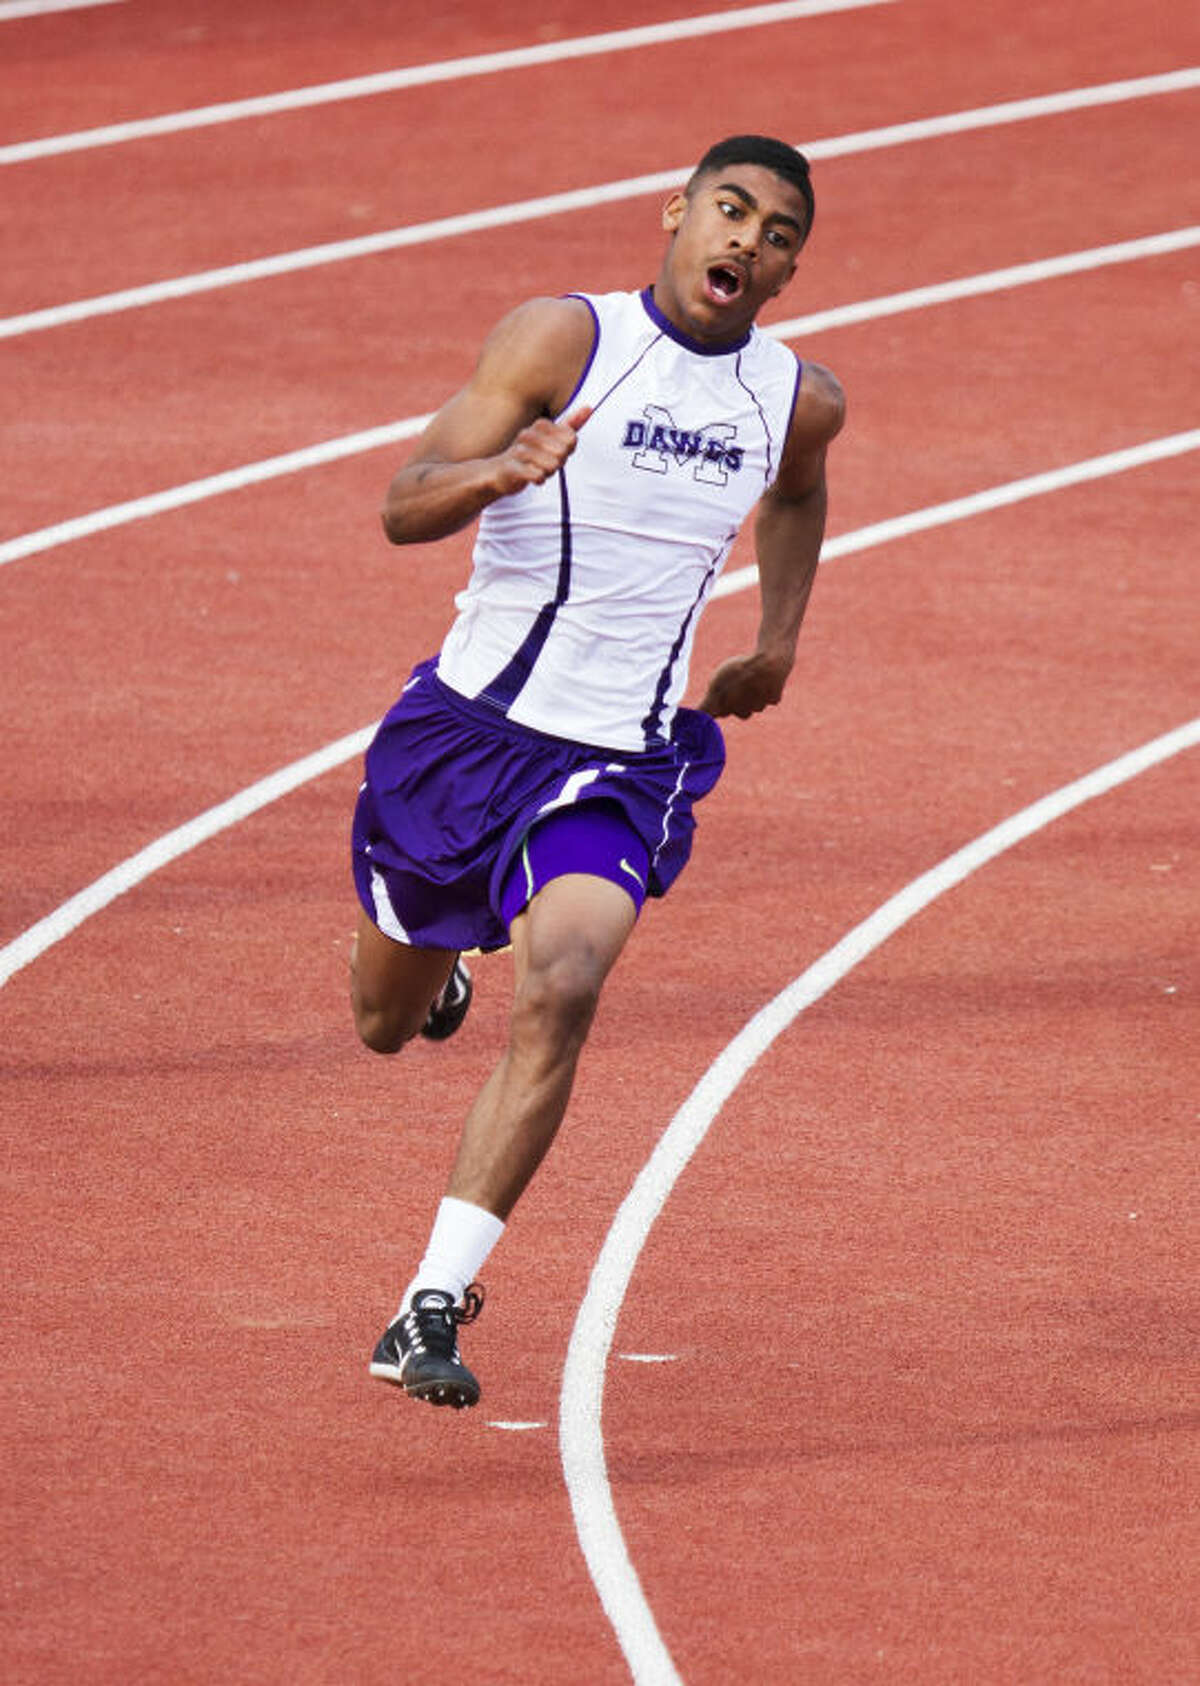 Midland's DeAndre Goodley rounds the corner of the 200M dash during the UIL District 2-5A Track Championship on Friday at Lowrey Field in Lubbock. Goodley won the event with a